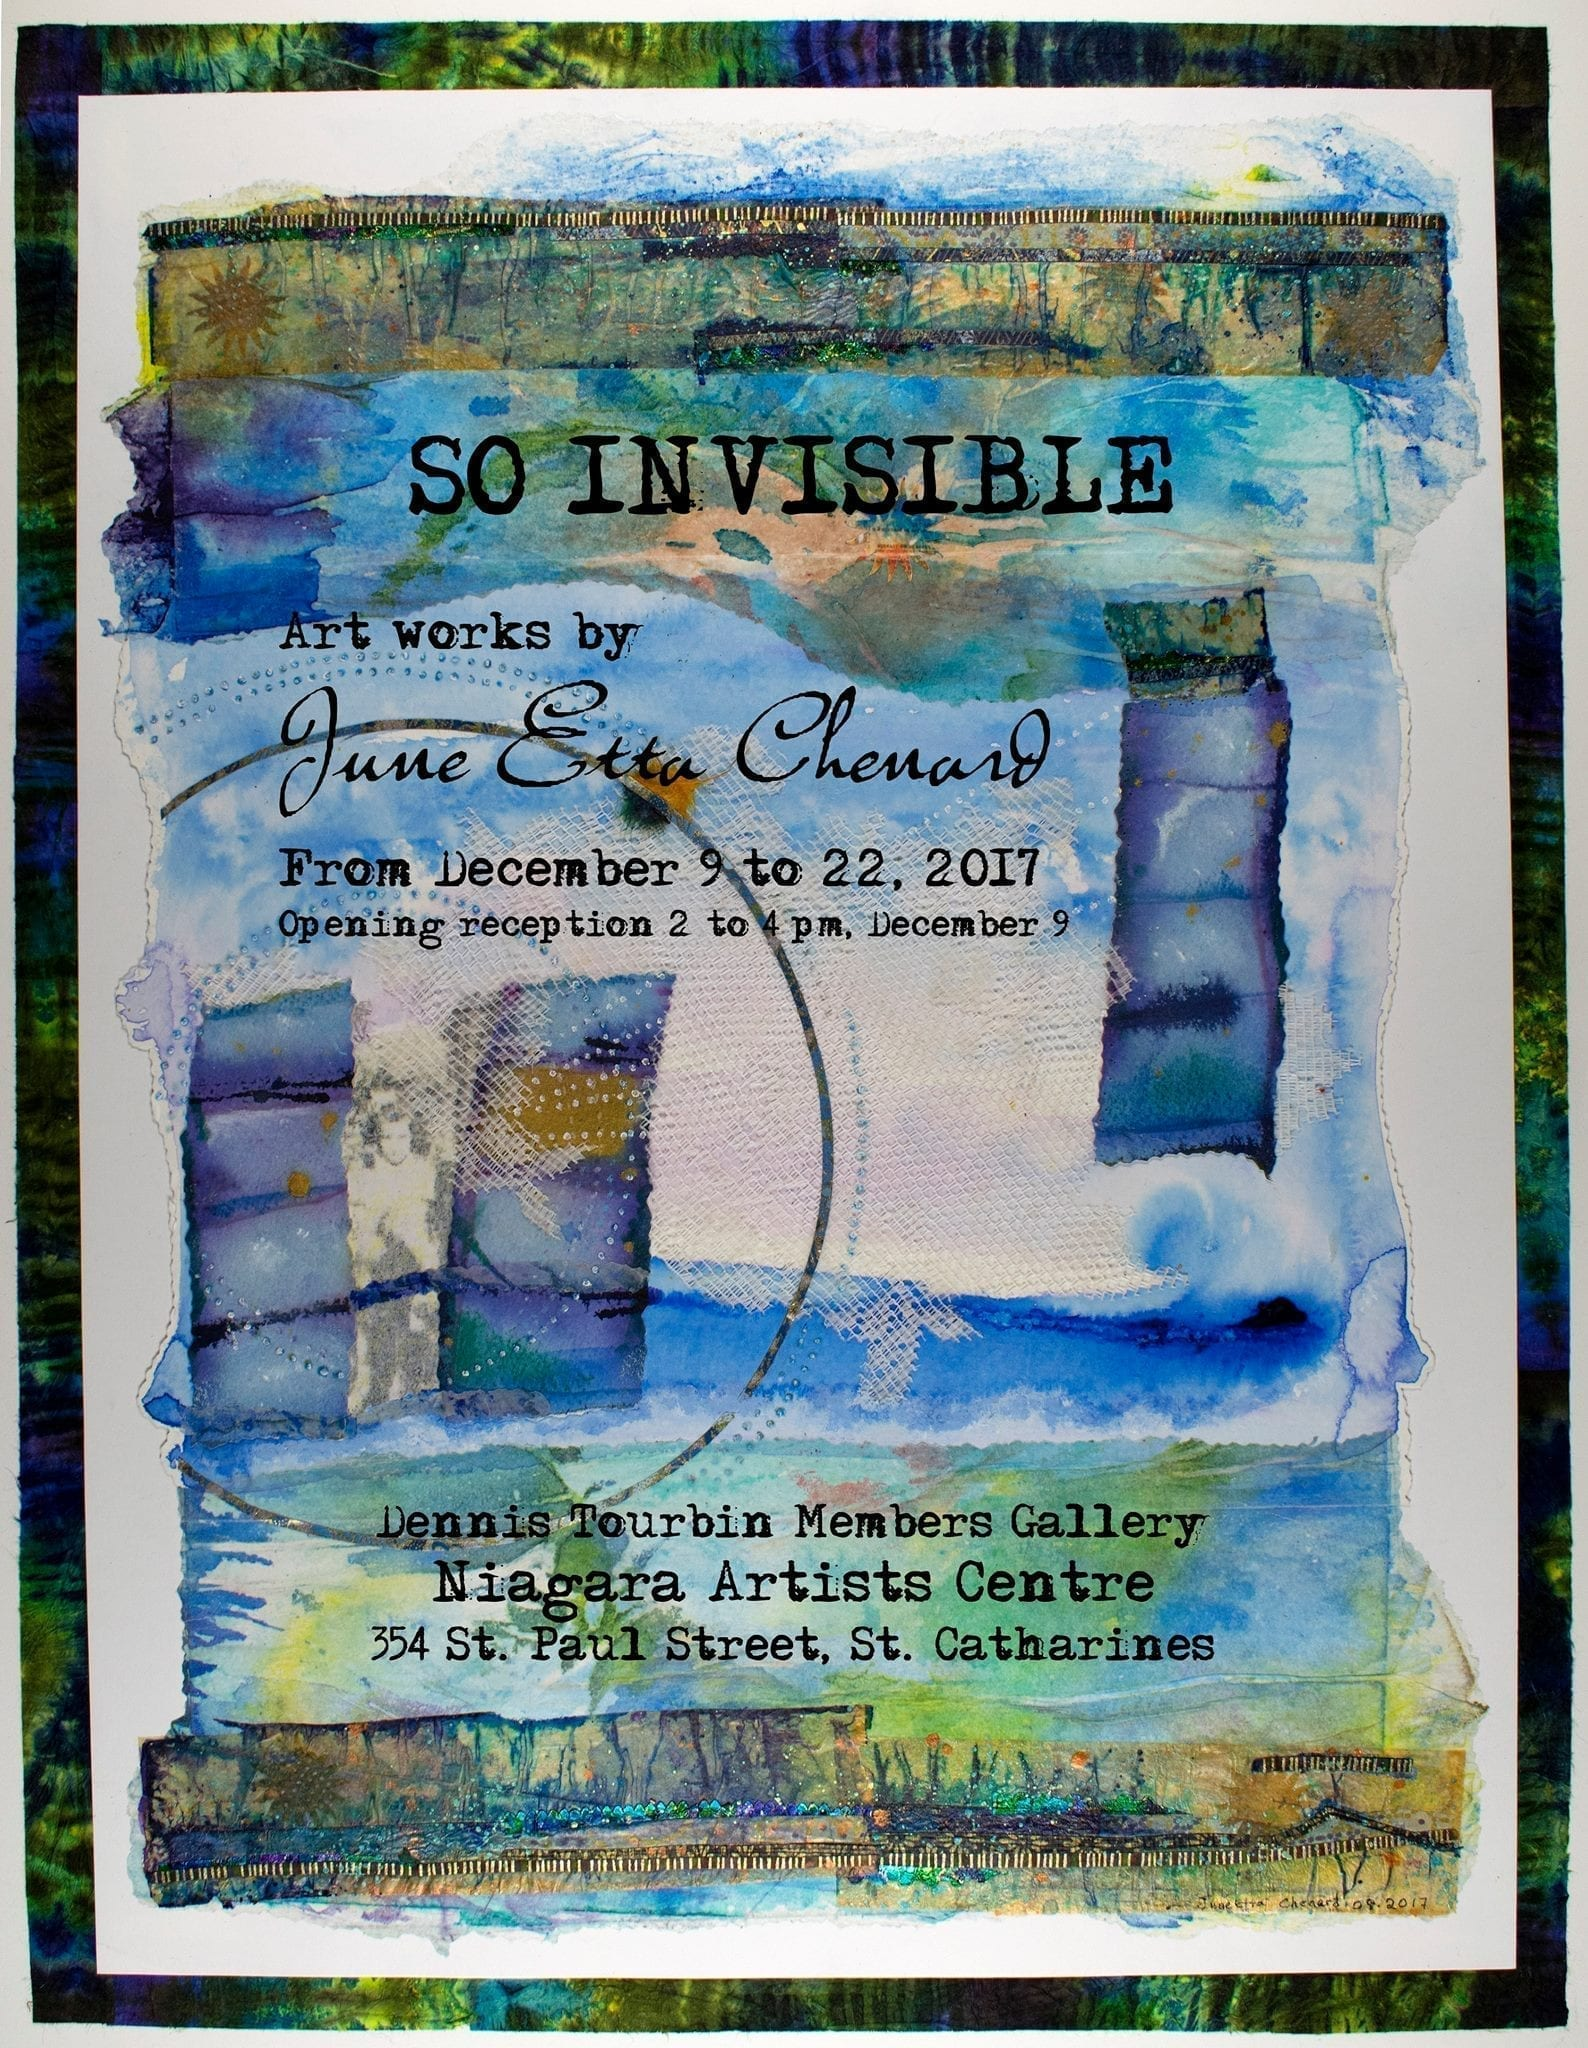 So Invisible by June-Etta Chenard Sat 9 Dec 2017